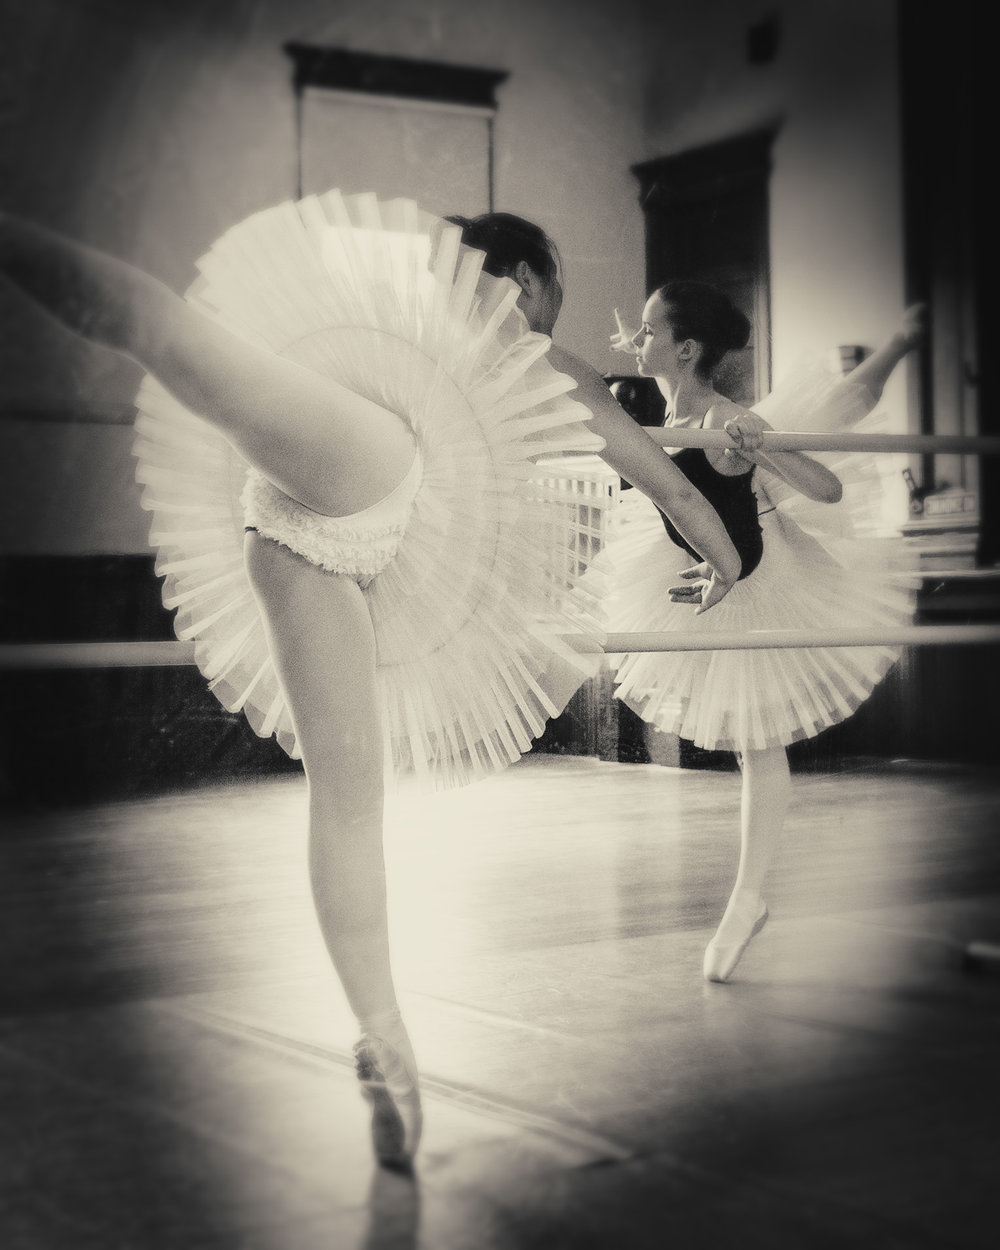 """""""Photographing dancers is an extremely difficult specialty niche. Bogdan did a beautiful job catching all the delicacy and strength of these young women. I was amazed and thrilled at his professionalism and ability to capture the spirit of Ballet."""" - Margaret Voss, Director, Chester Dancers"""